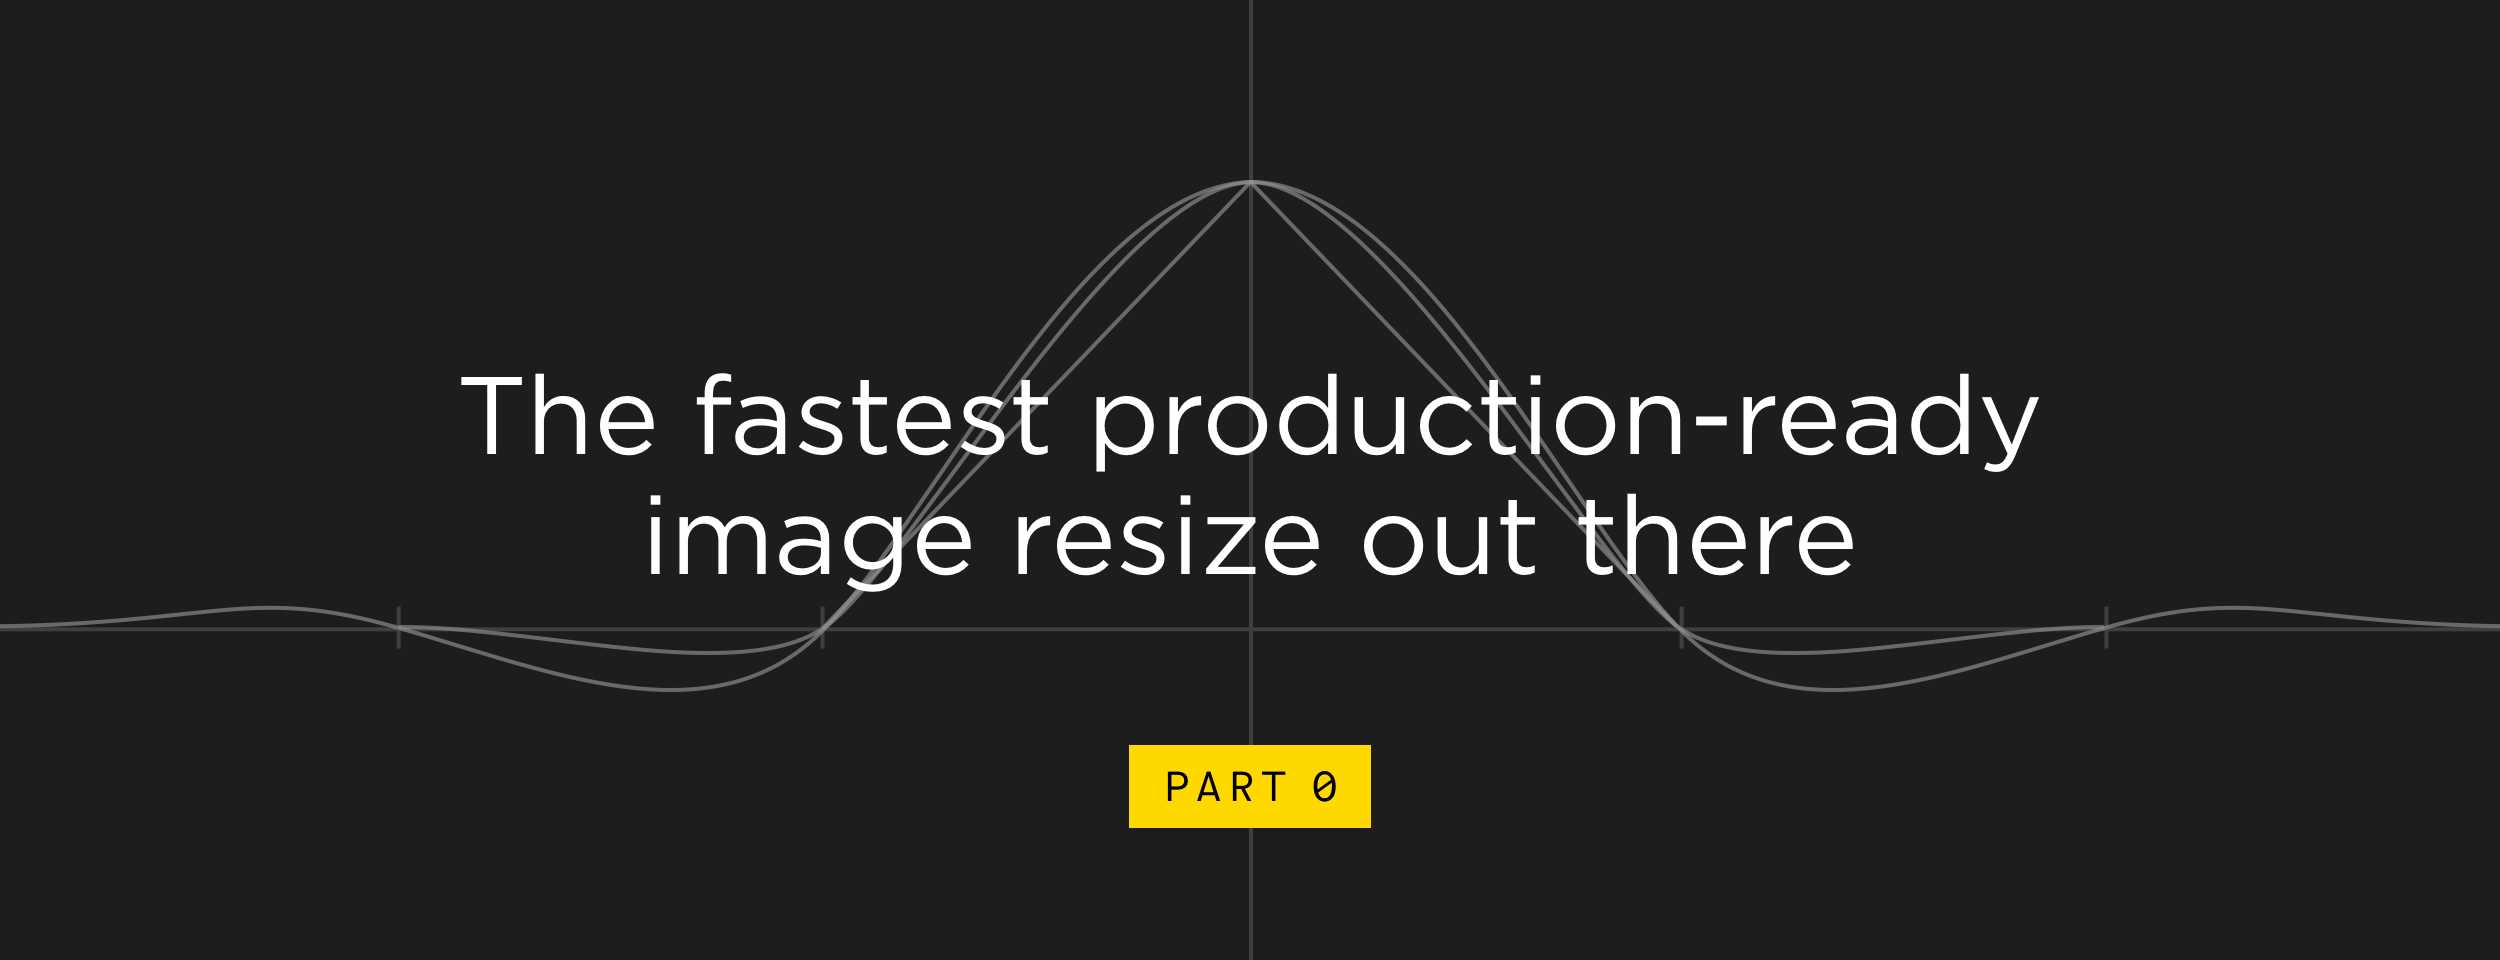 The fastest production-ready image resize out there, part 0